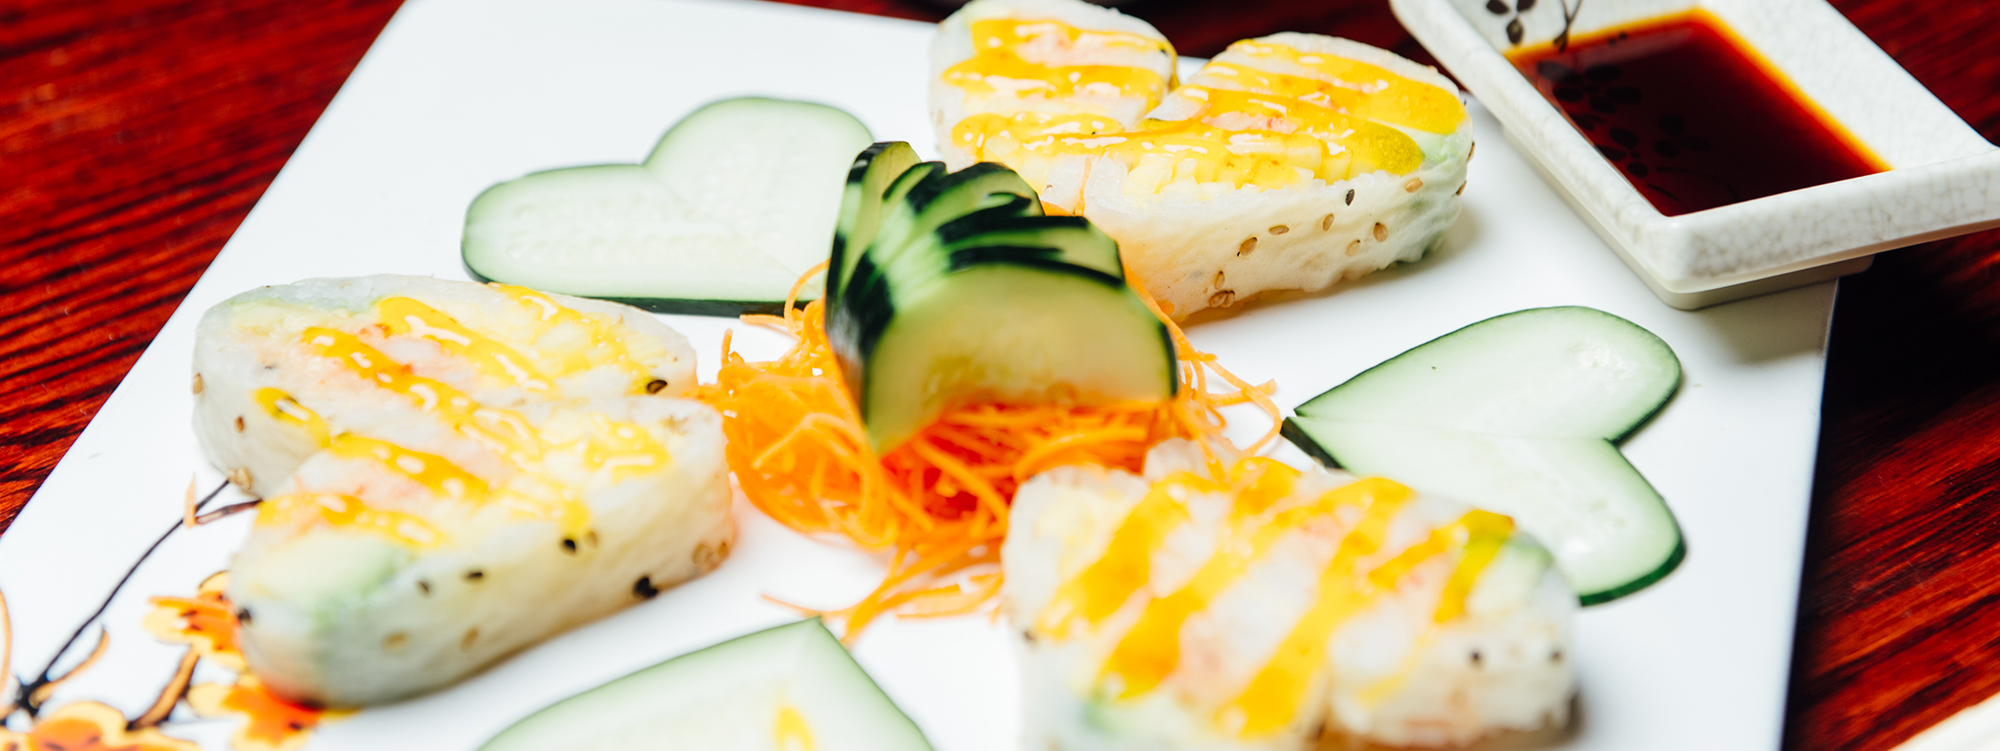 Decorated cucumbers and sushi